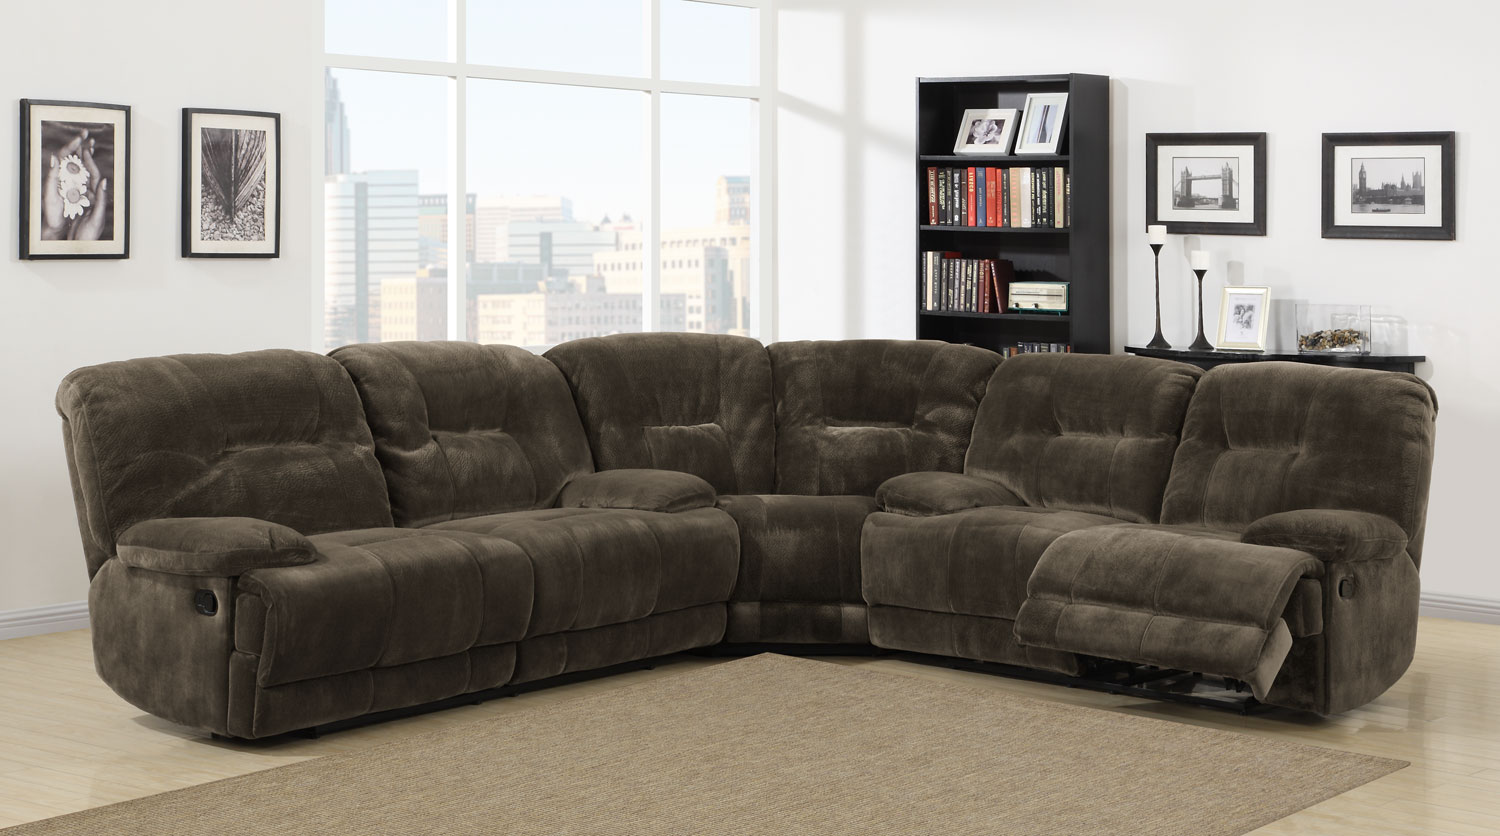 Elegant Power Reclining Sectional Sofa 99 With Additional Modern Sofa Ideas with Power Reclining Sectional Sofa